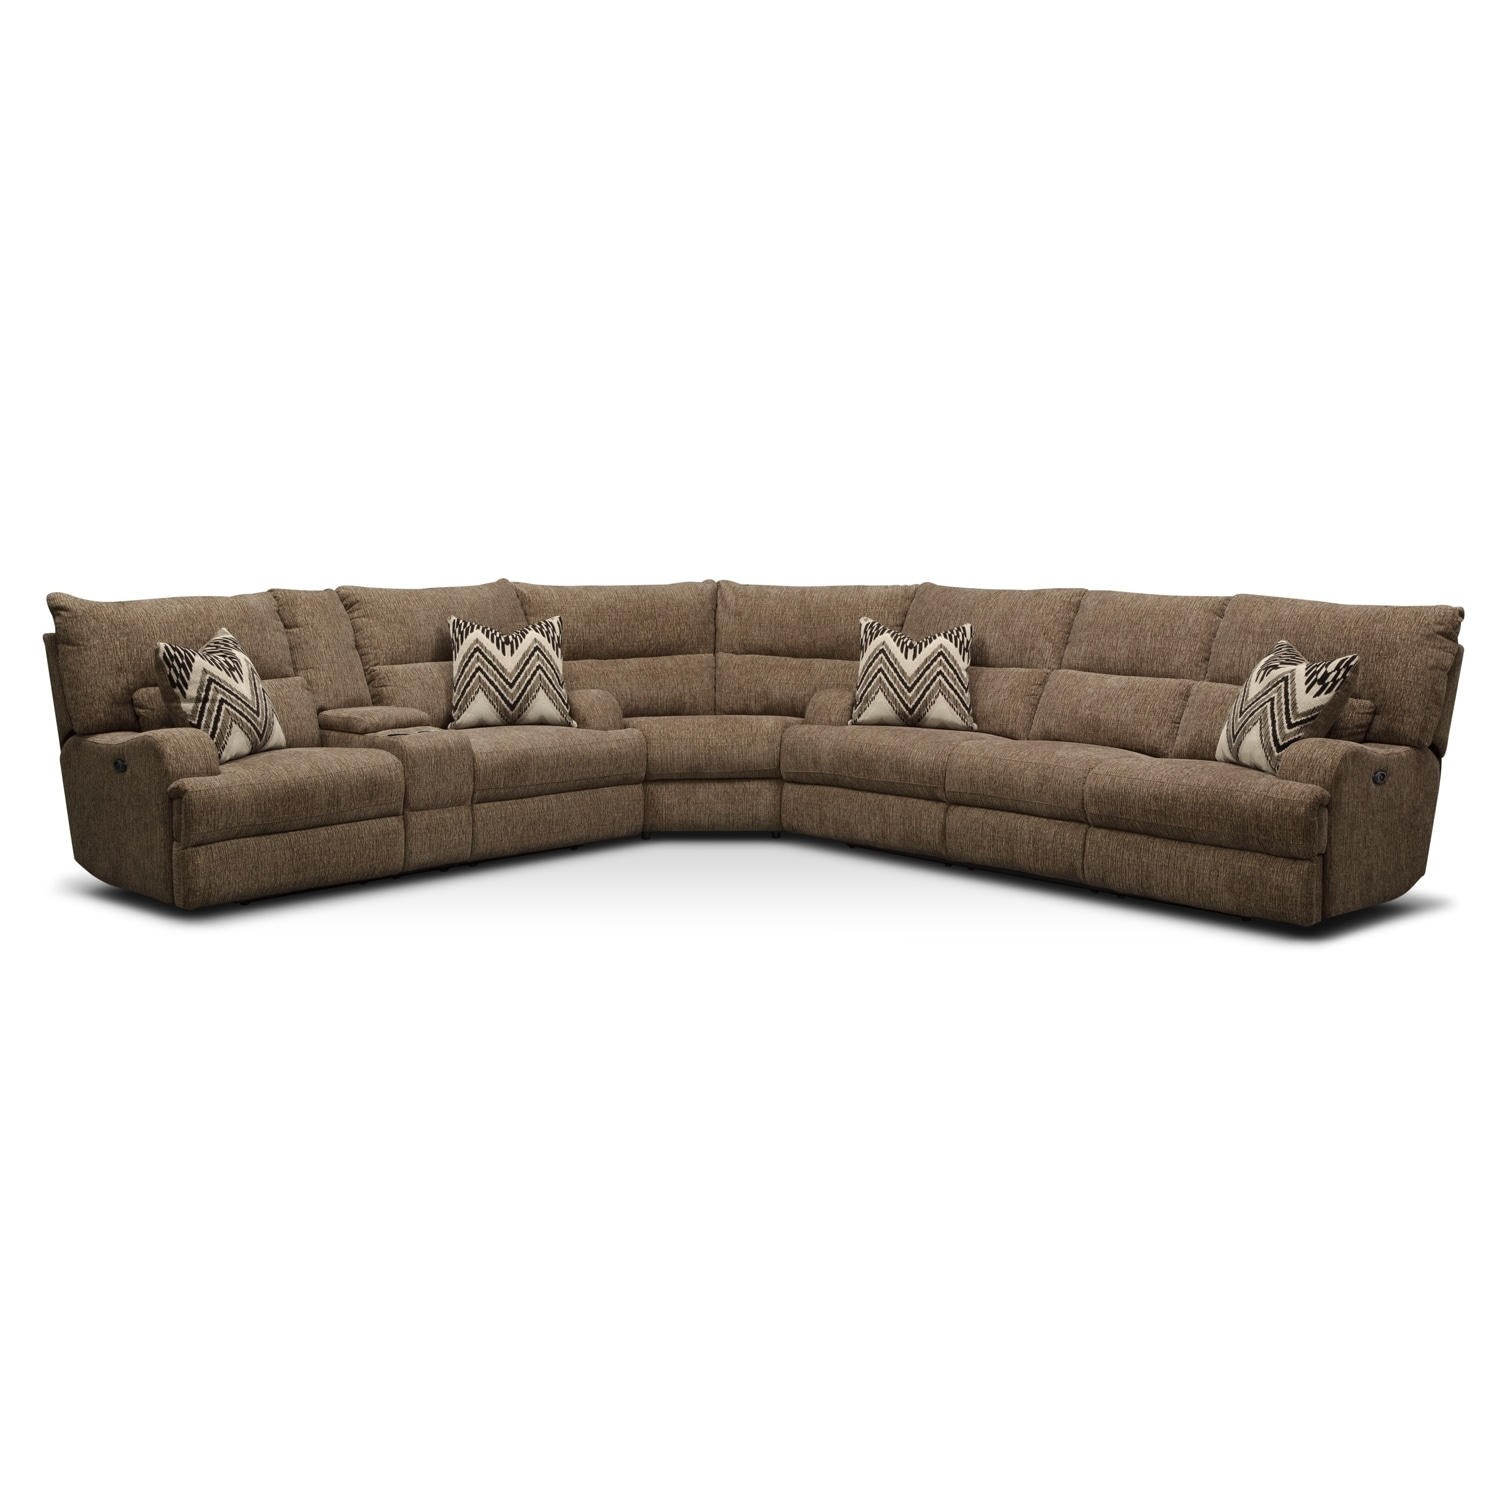 [Sundance 3 Pc. Power Reclining Sectional]